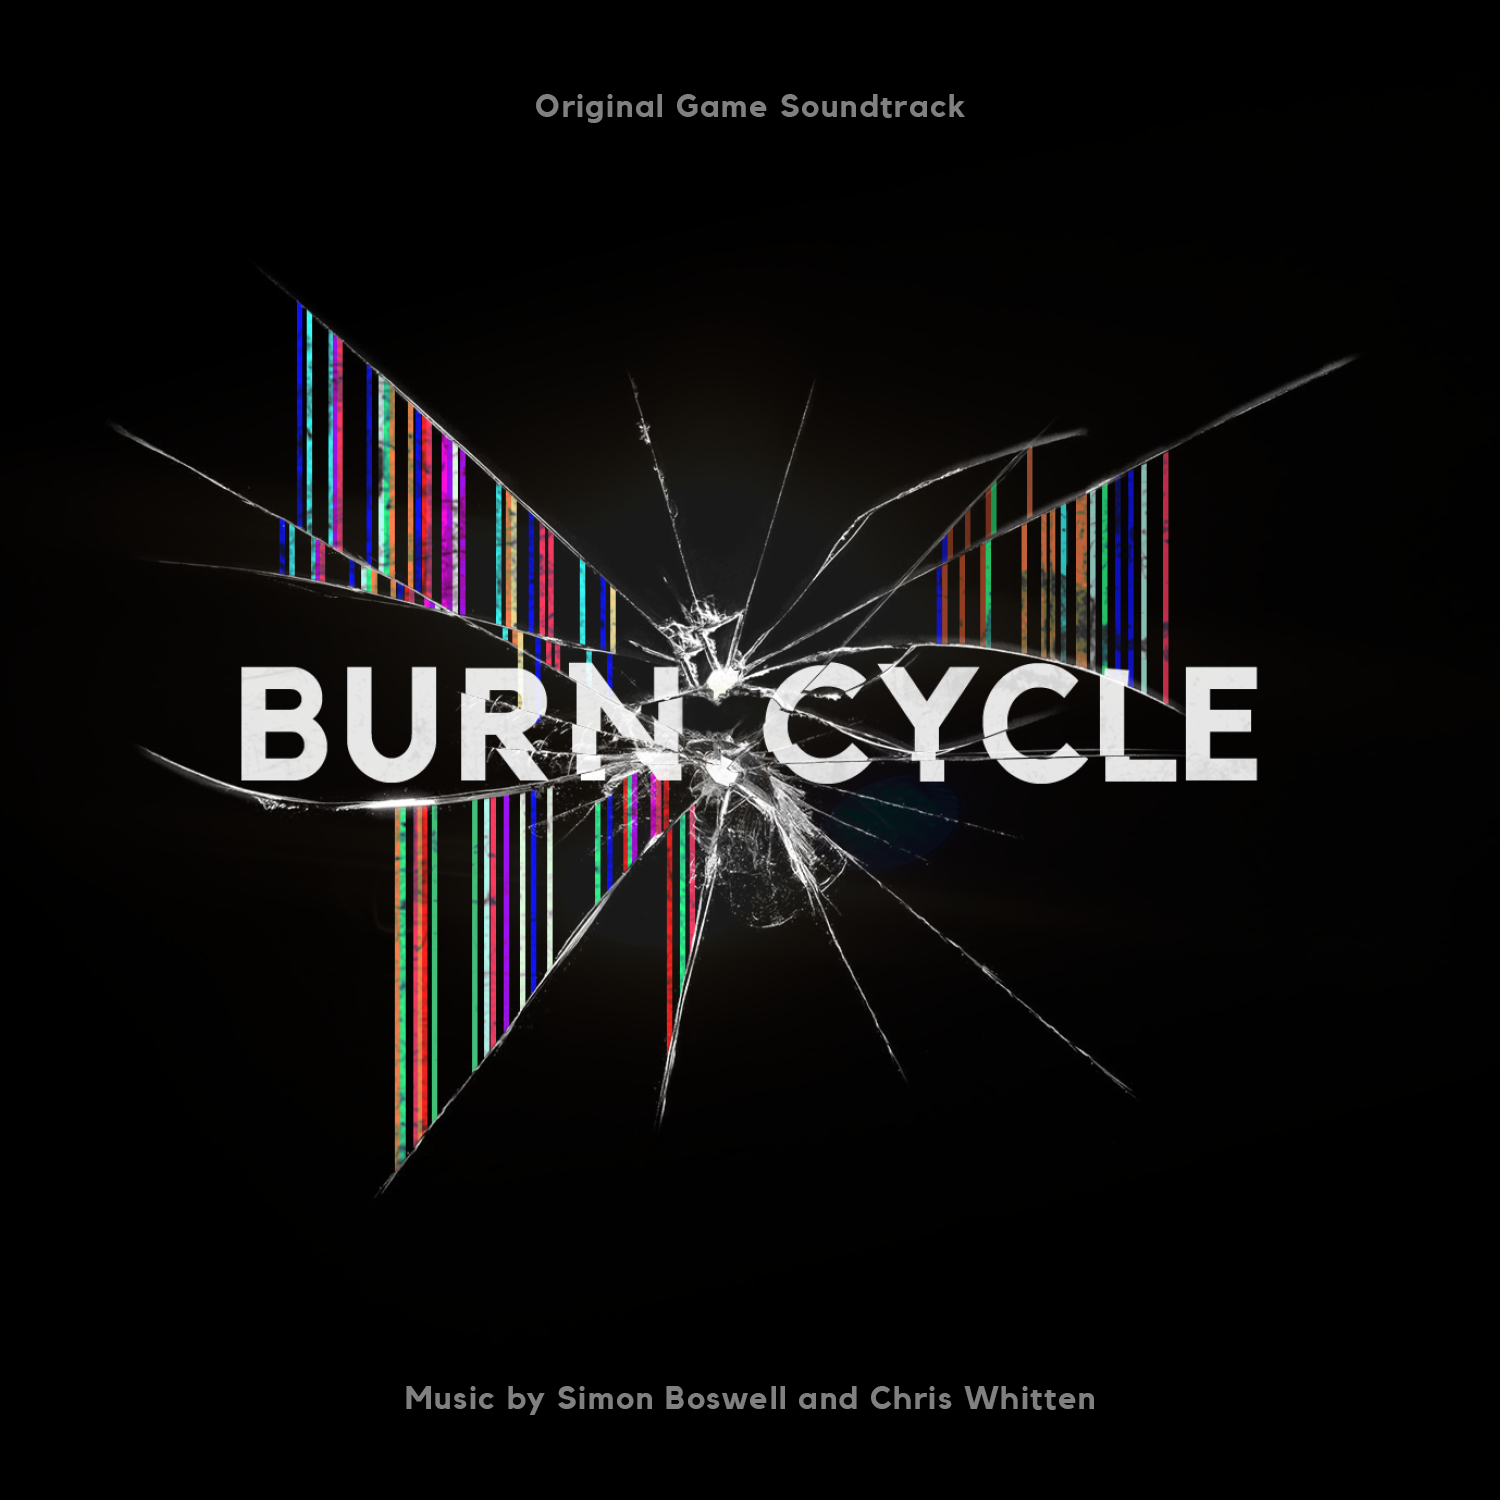 New music, downtempo electronica, filmscore soundtrack composer Simon Boswell and synth collector Chris Whitten electronic cinematic sounds of Burn:Cycle Original Game Soundtrack. Released by record label Here & Now Recordings Cinematic Sounds based in Woking, United Kingdom